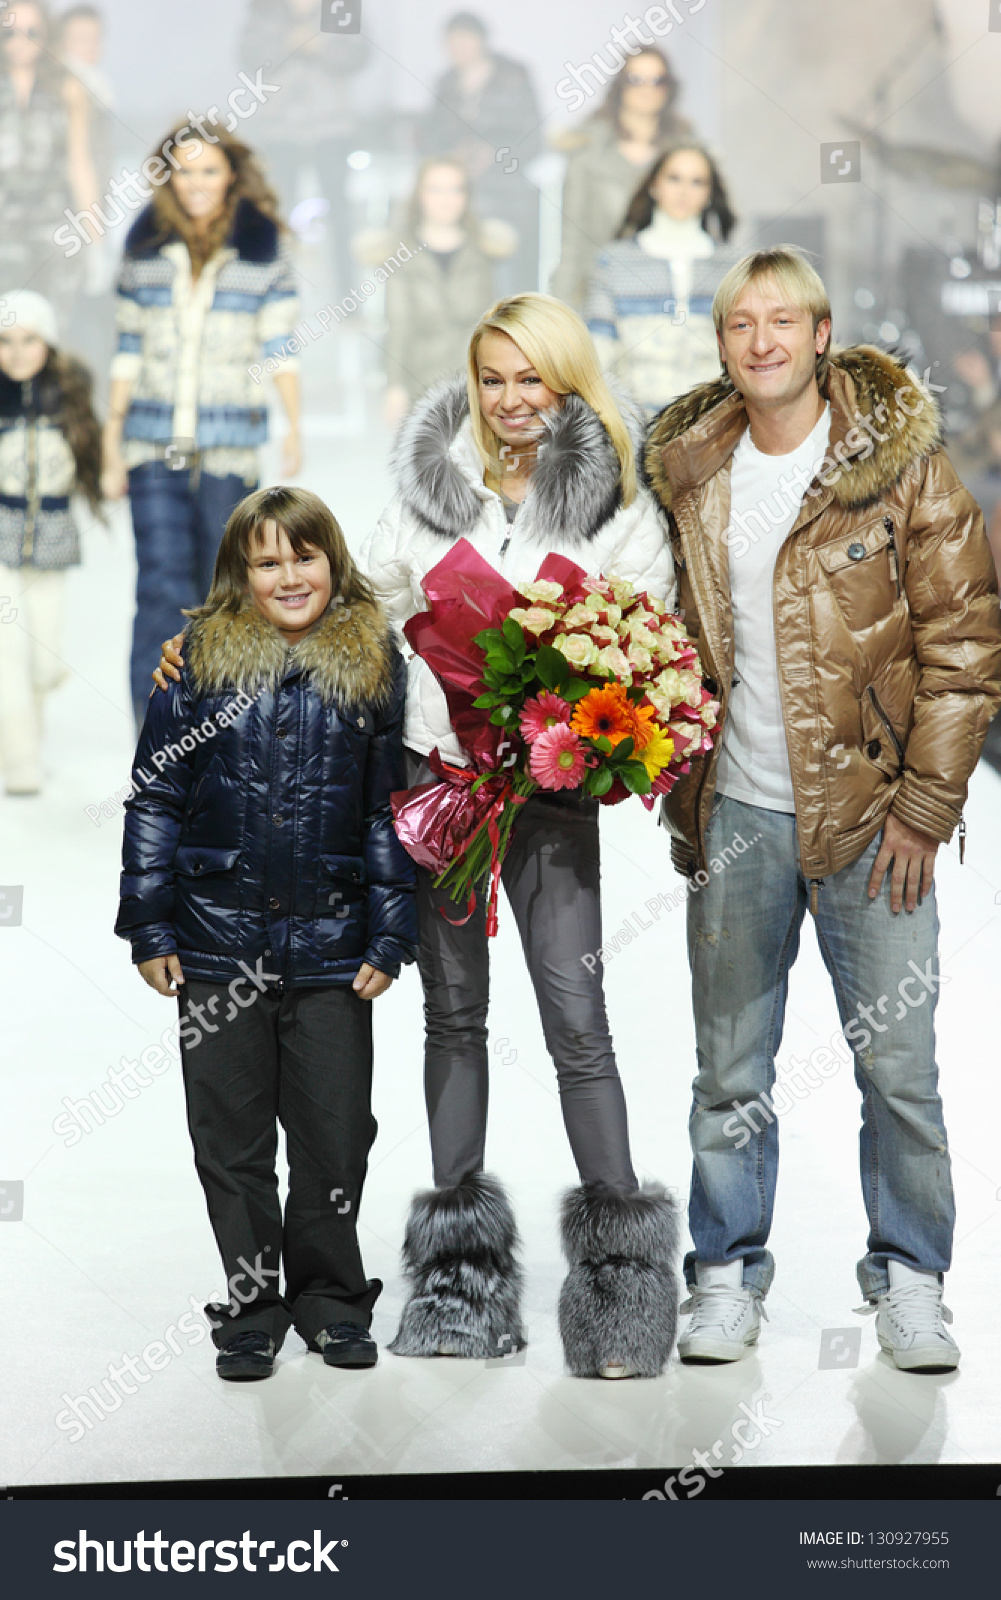 Plushenko and Rudkovskaya will shoot a reality show about their family life 04/12/2017 80